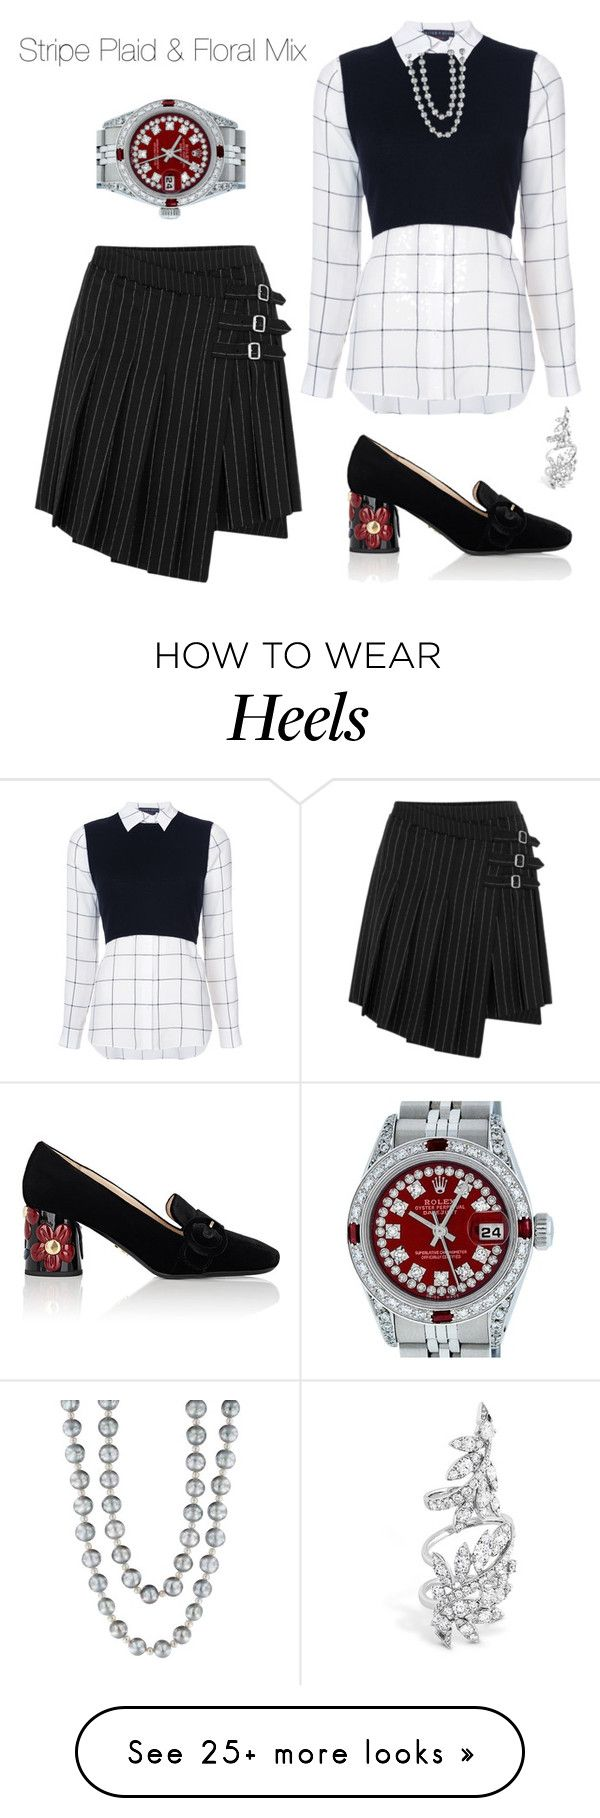 """""""Stripe plaid and floral mix"""" by sharonvandoesburg on Polyvore featuring McQ by Alexander McQueen, Alice + Olivia, Prada, Effy Jewelry and Rolex"""